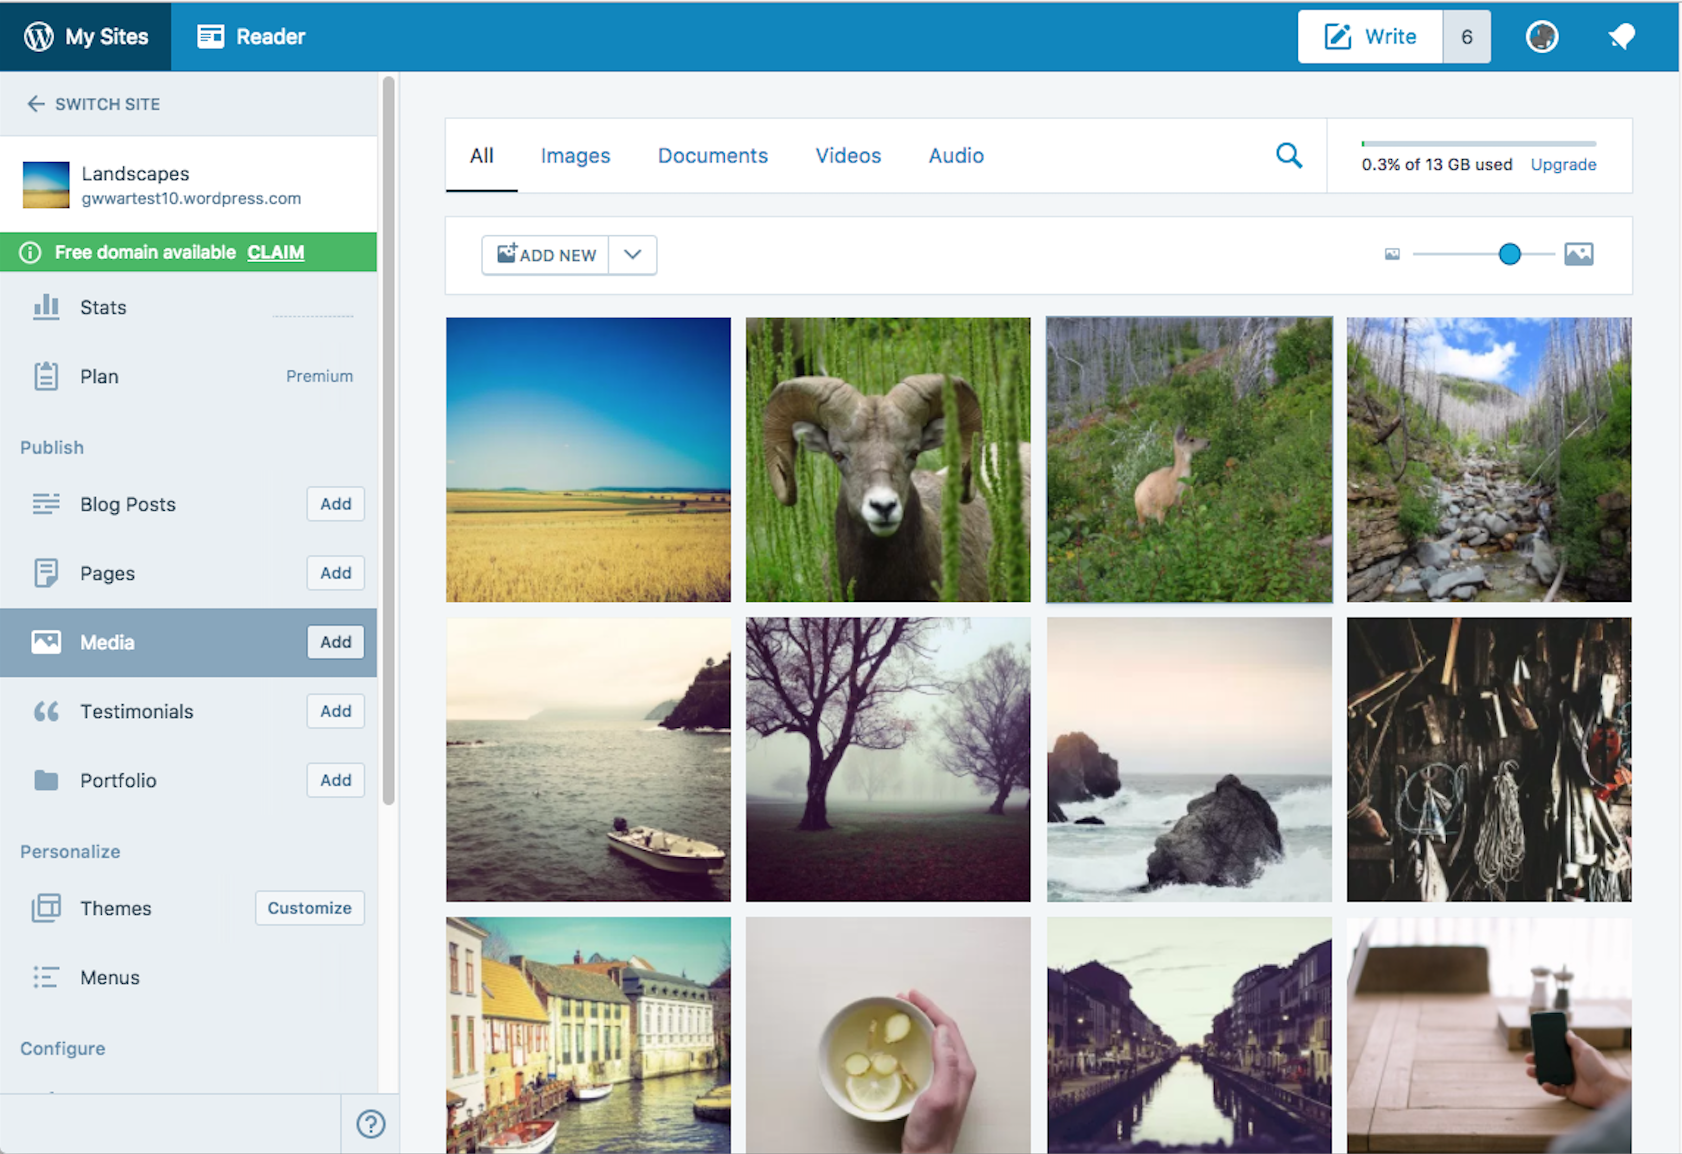 Save Your Favorite Images and Media on WordPress.com, Anytime